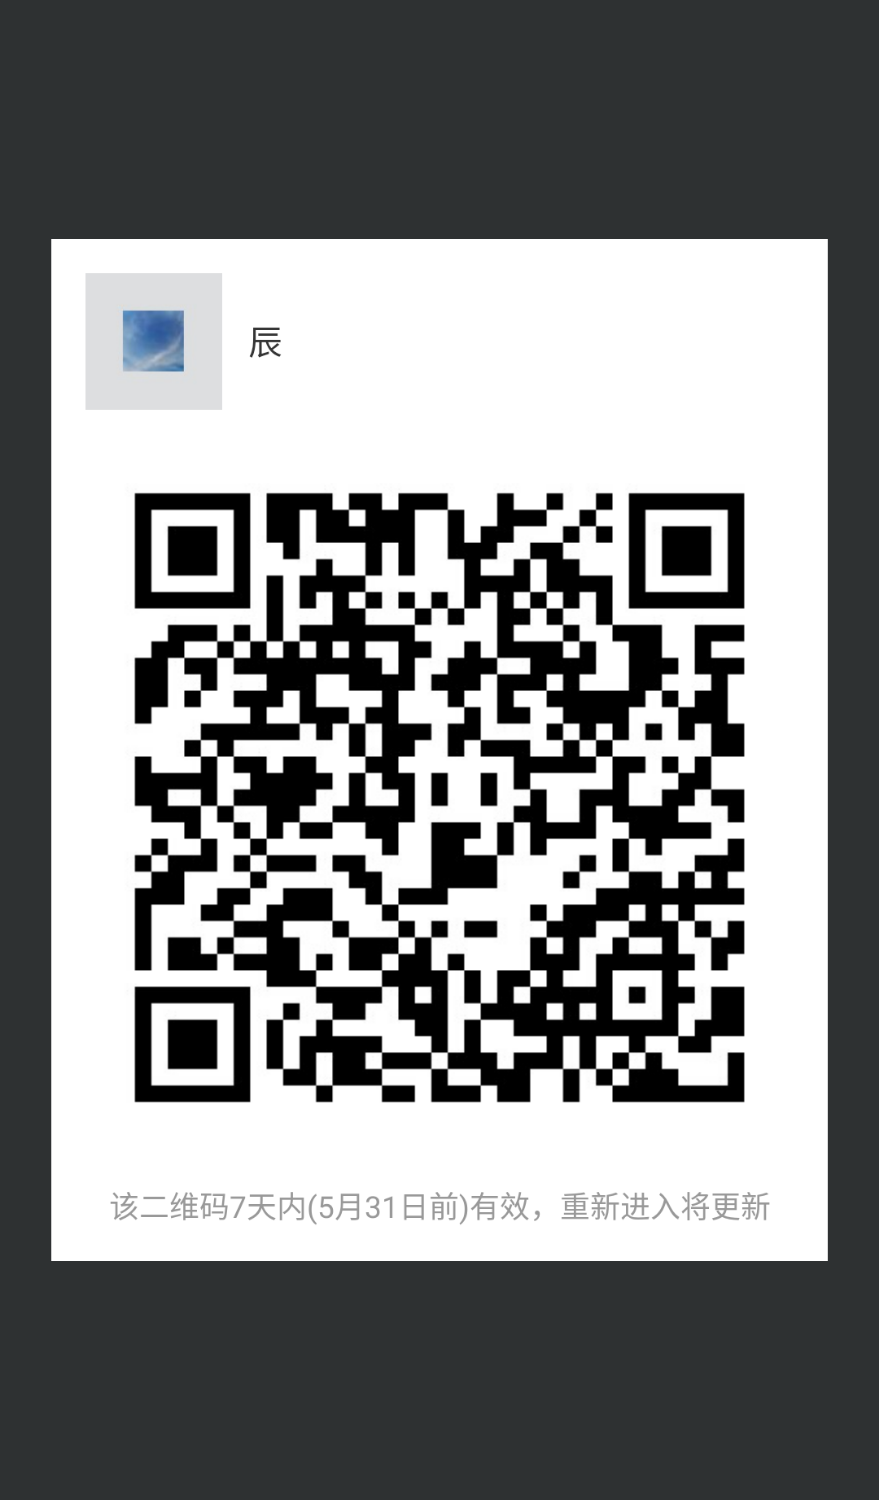 mmqrcode1527144155667.png